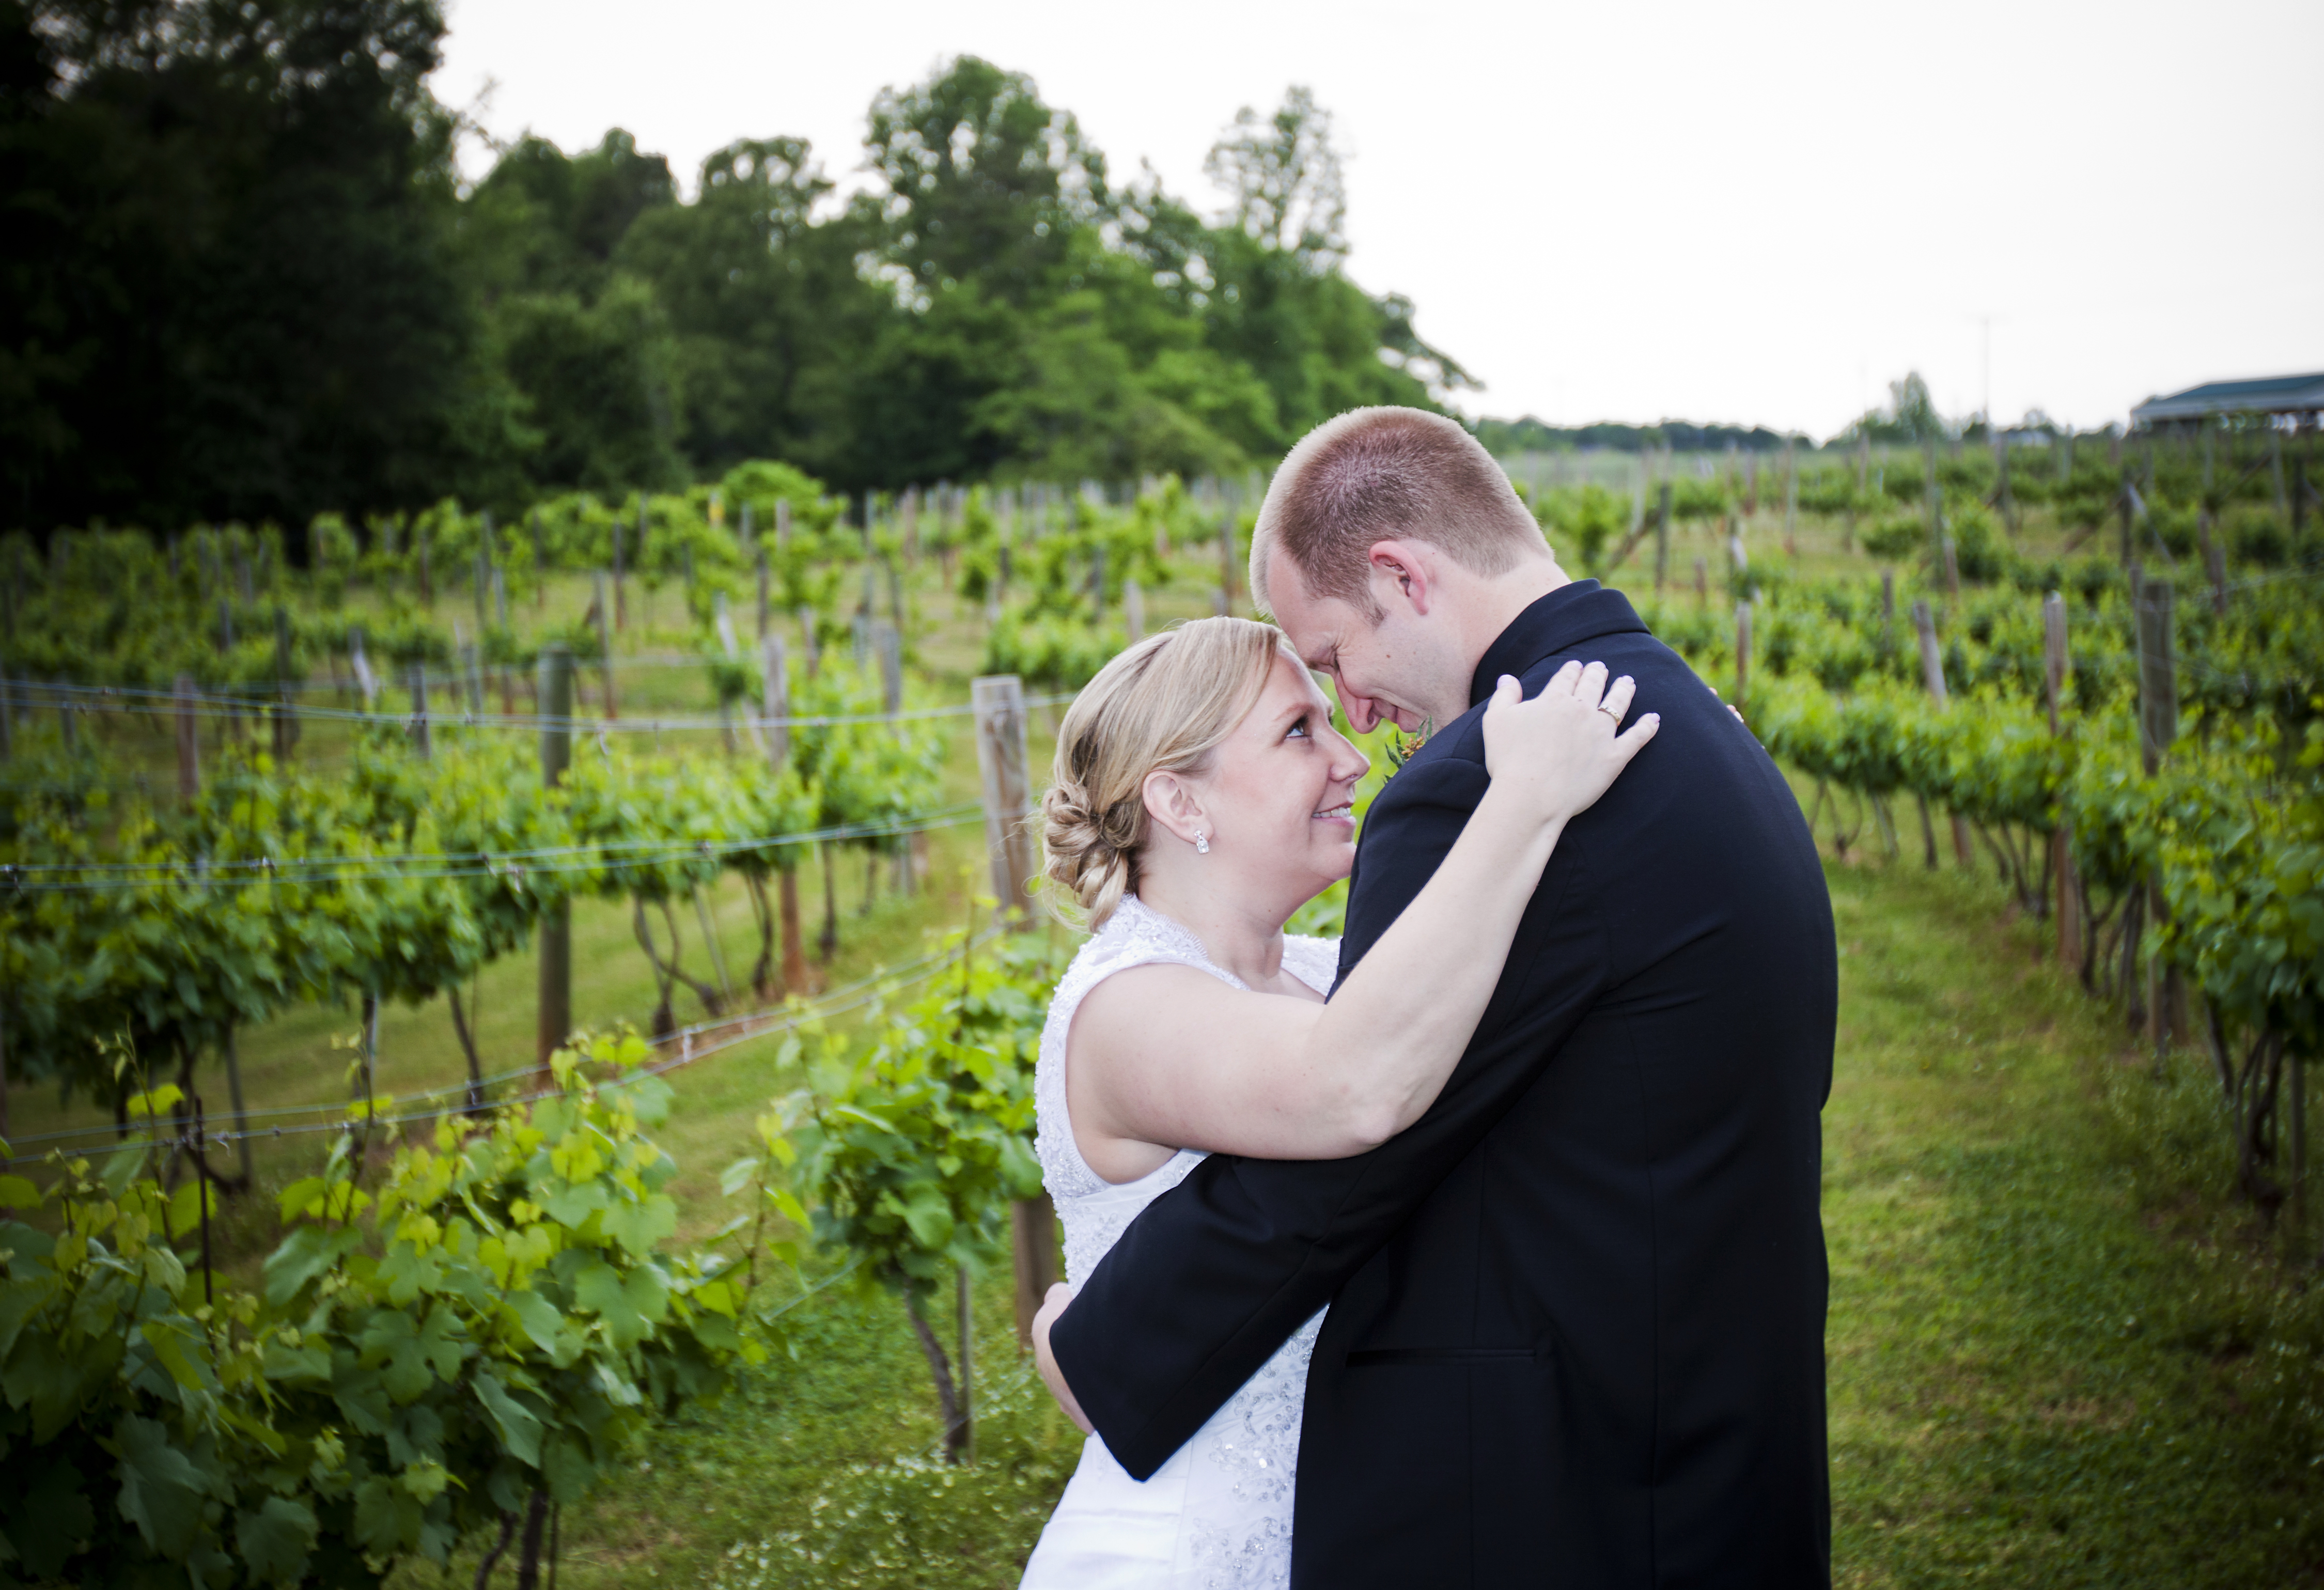 Flowers & Decor, Vineyard, Bride, Groom, And